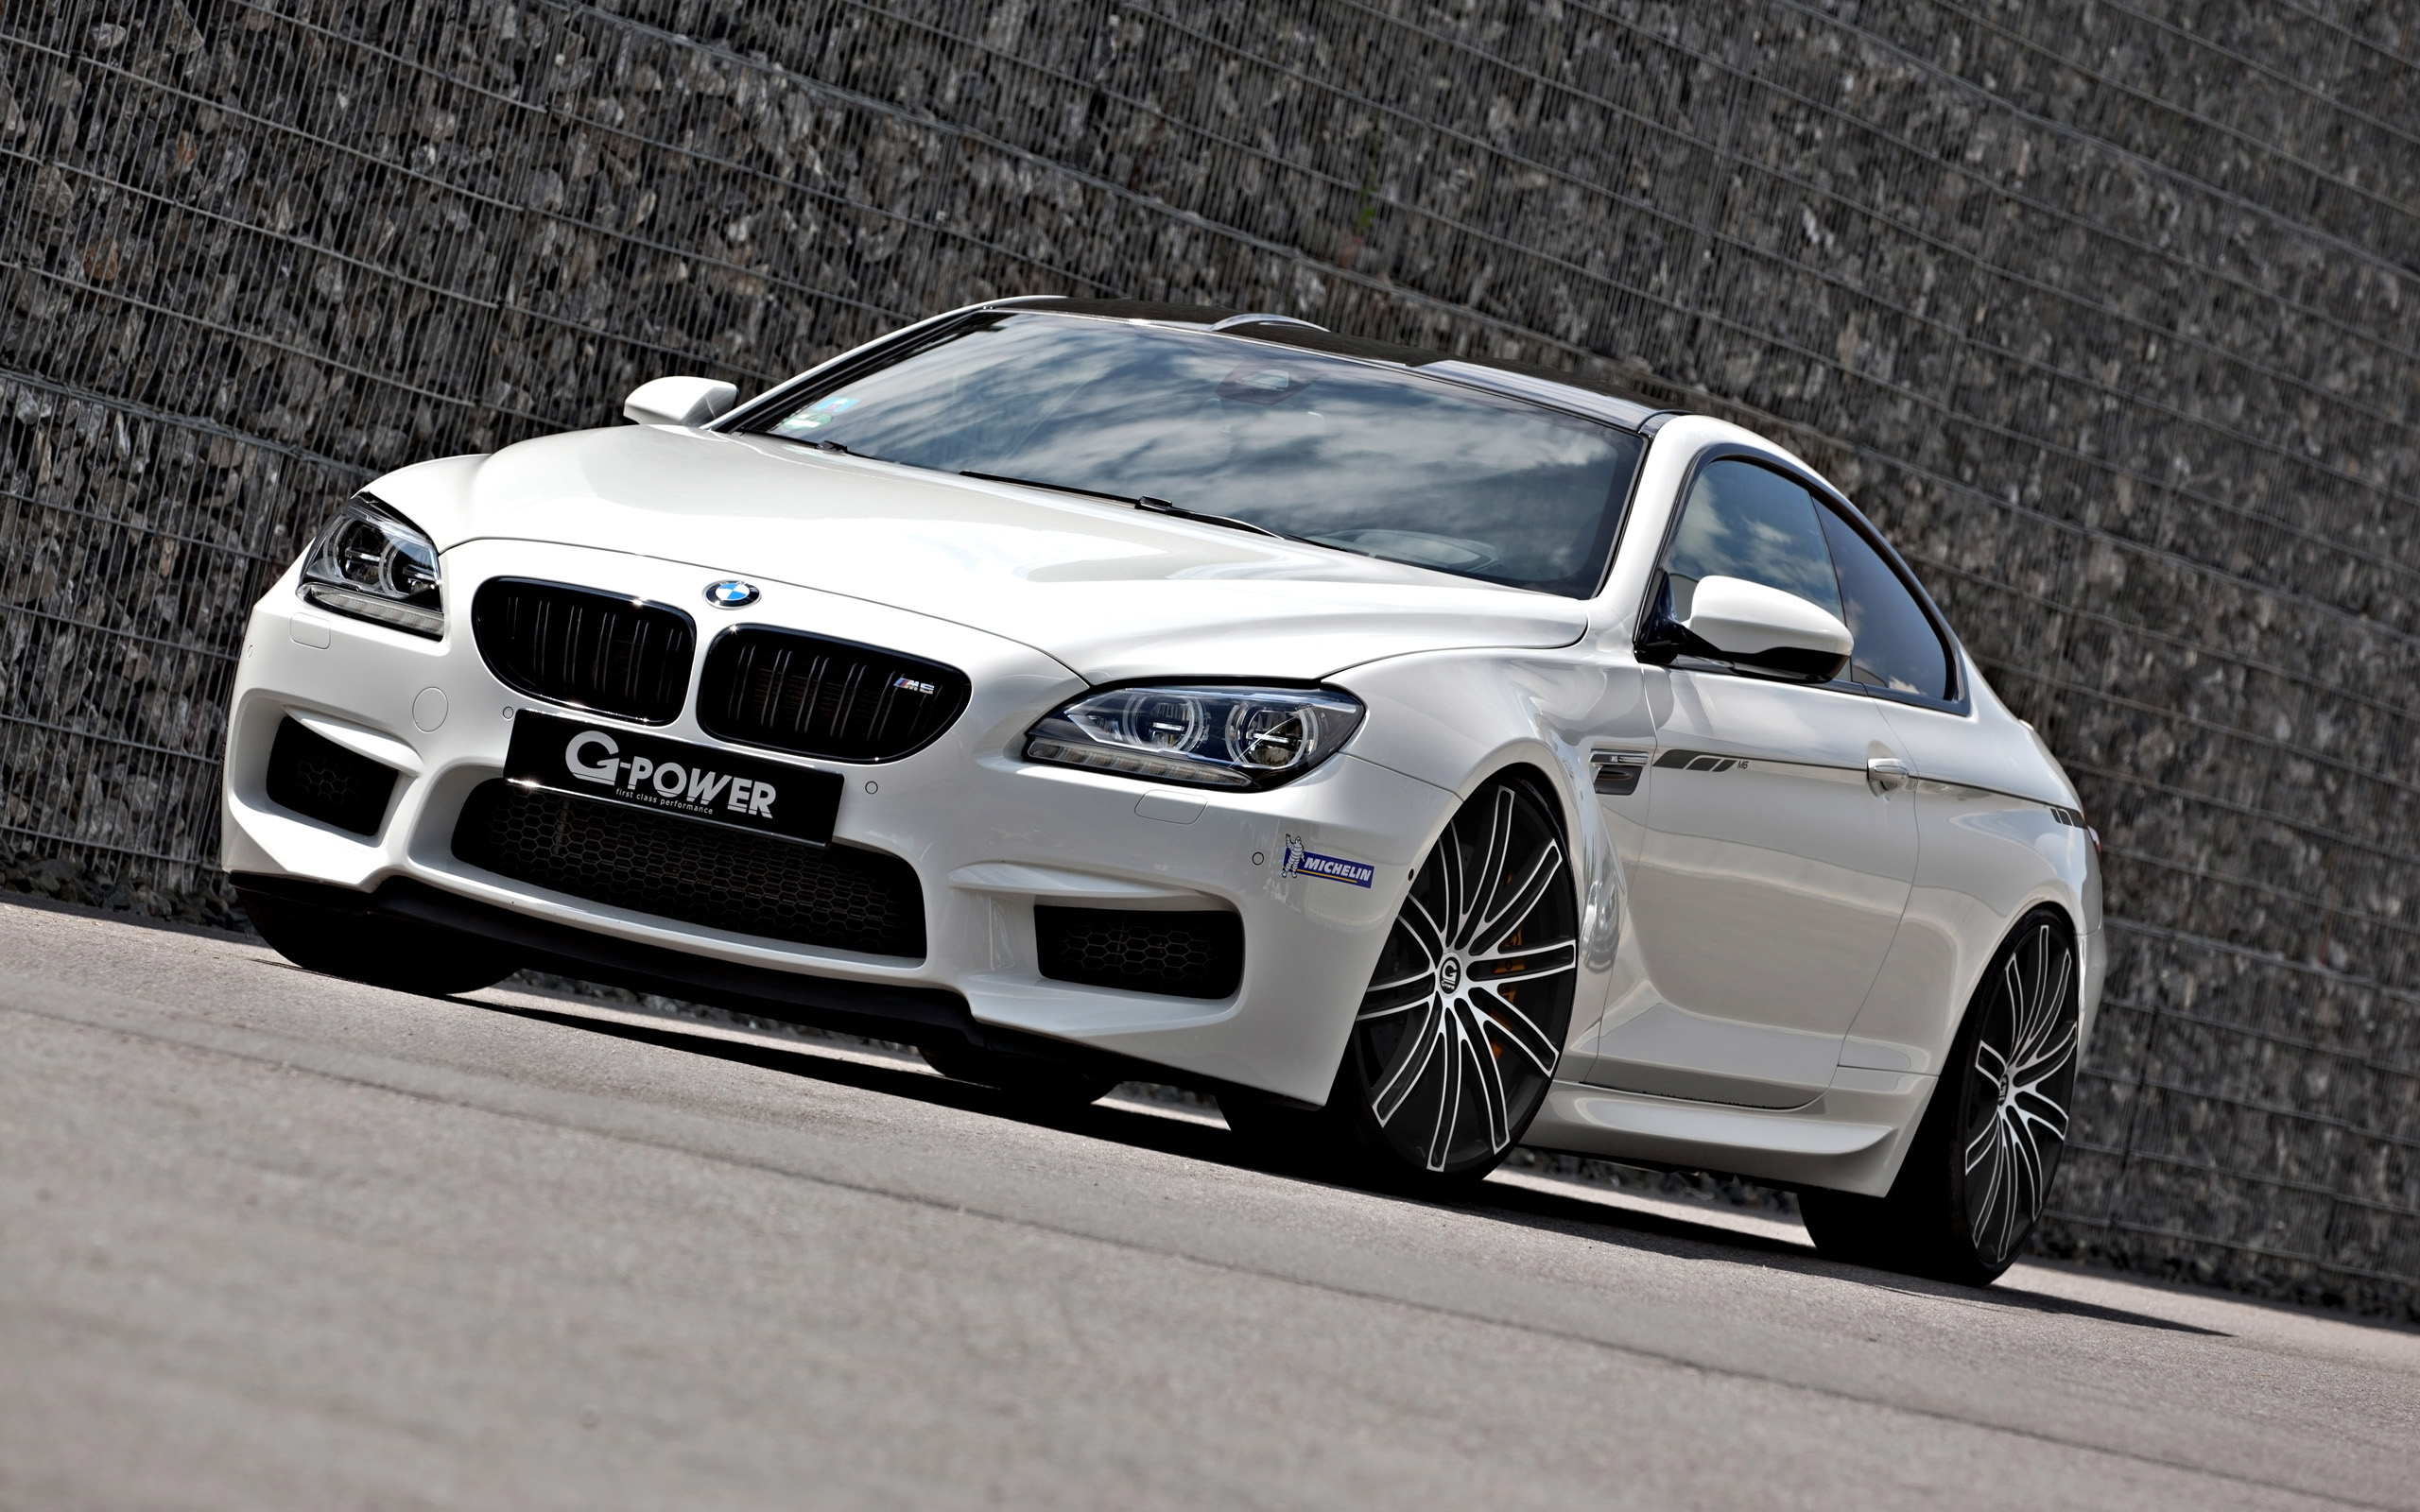 2013 g power bmw m6 f13 wallpaper hd car wallpapers. Black Bedroom Furniture Sets. Home Design Ideas